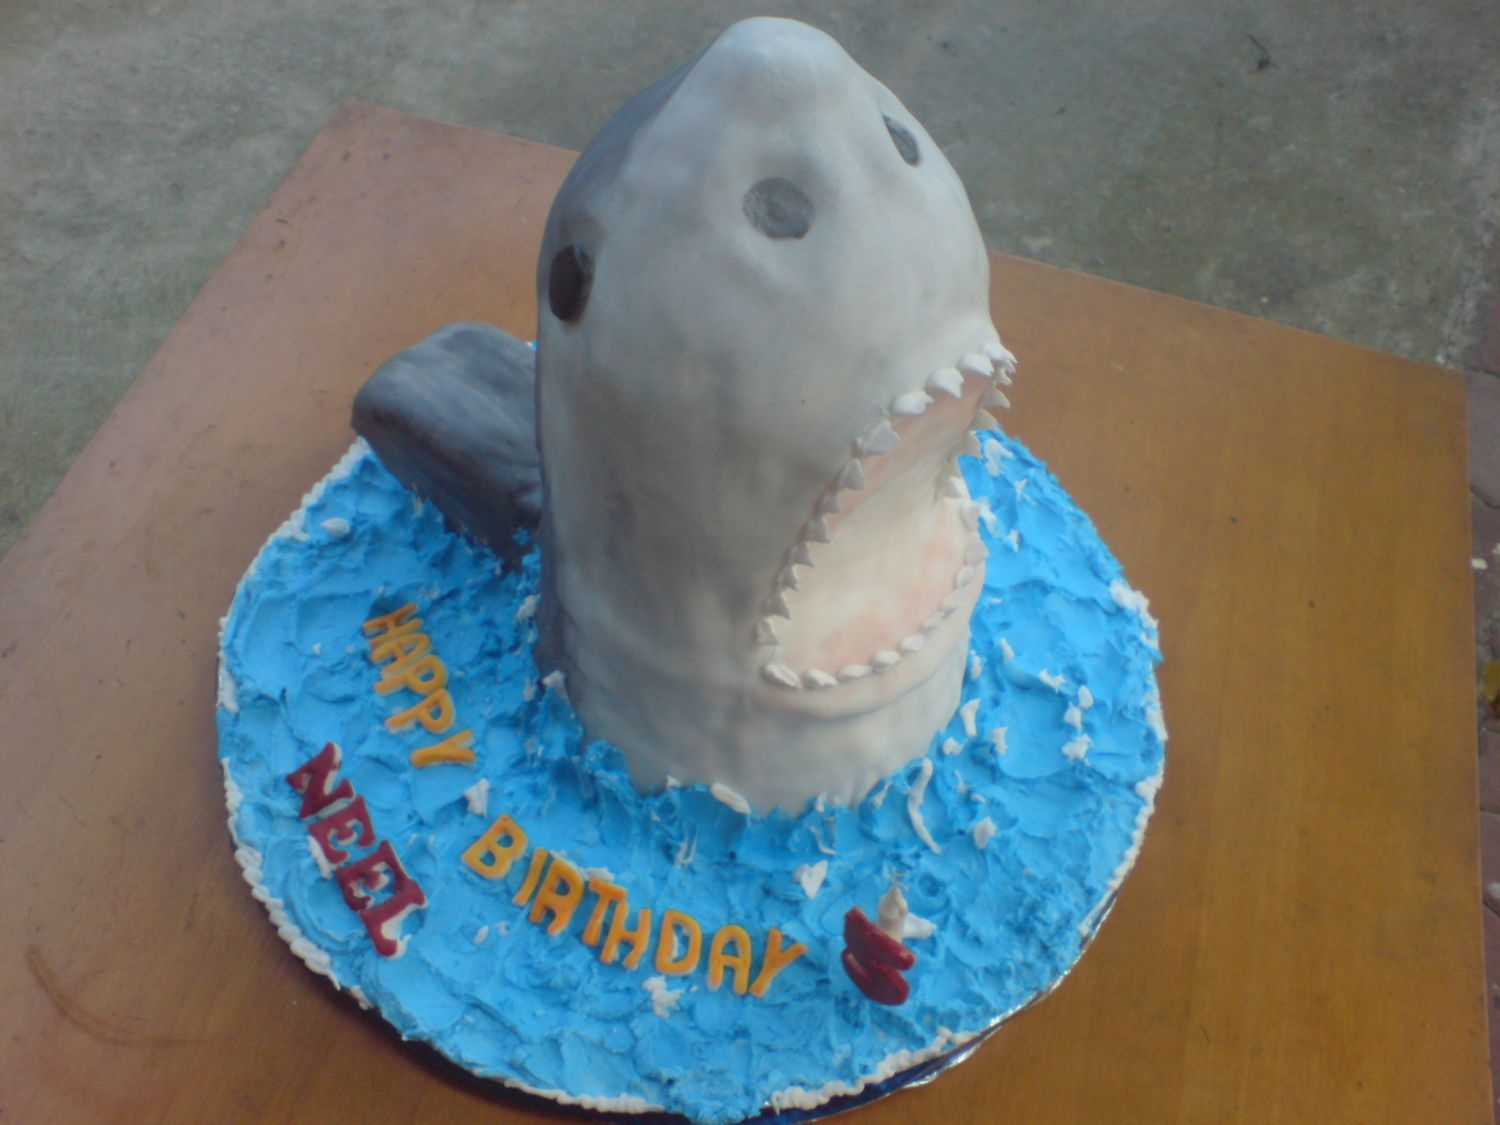 Shark Another cake made in collaboration with my biz partner Shelly2005. She carved the cake and we covered it with MMF. Hand-painted details....